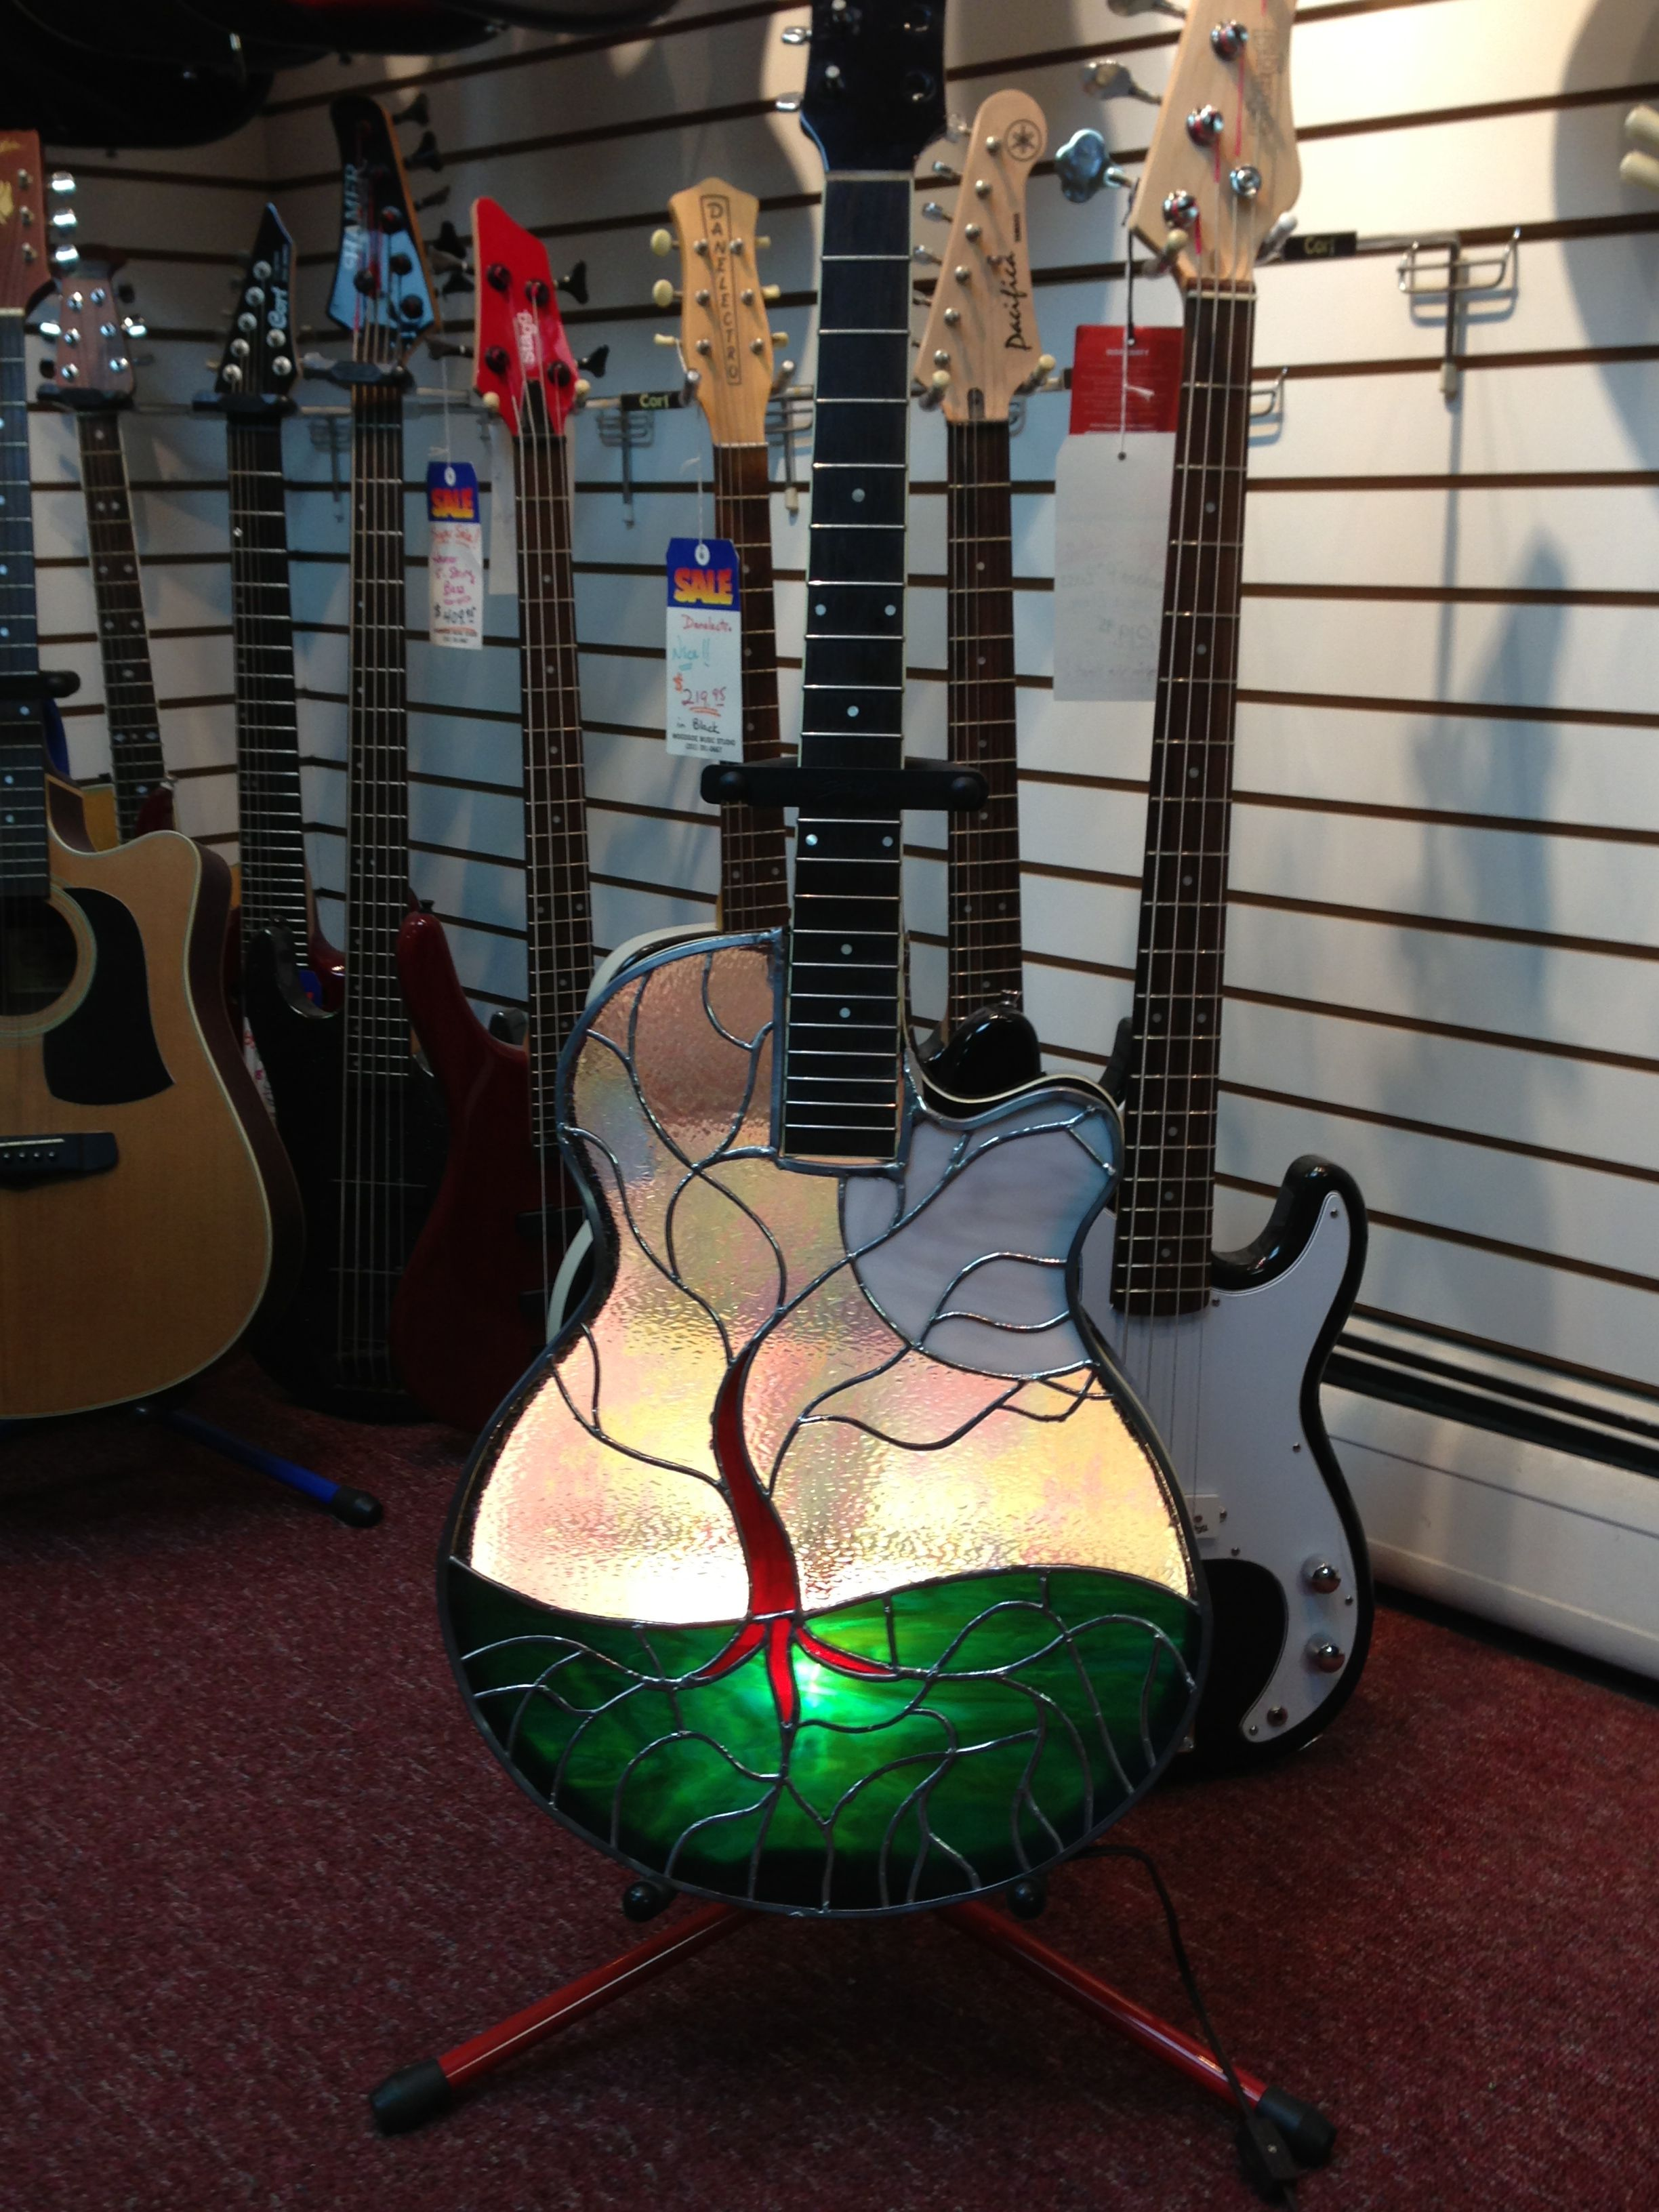 guitar light stained glass mosaic Pinterest